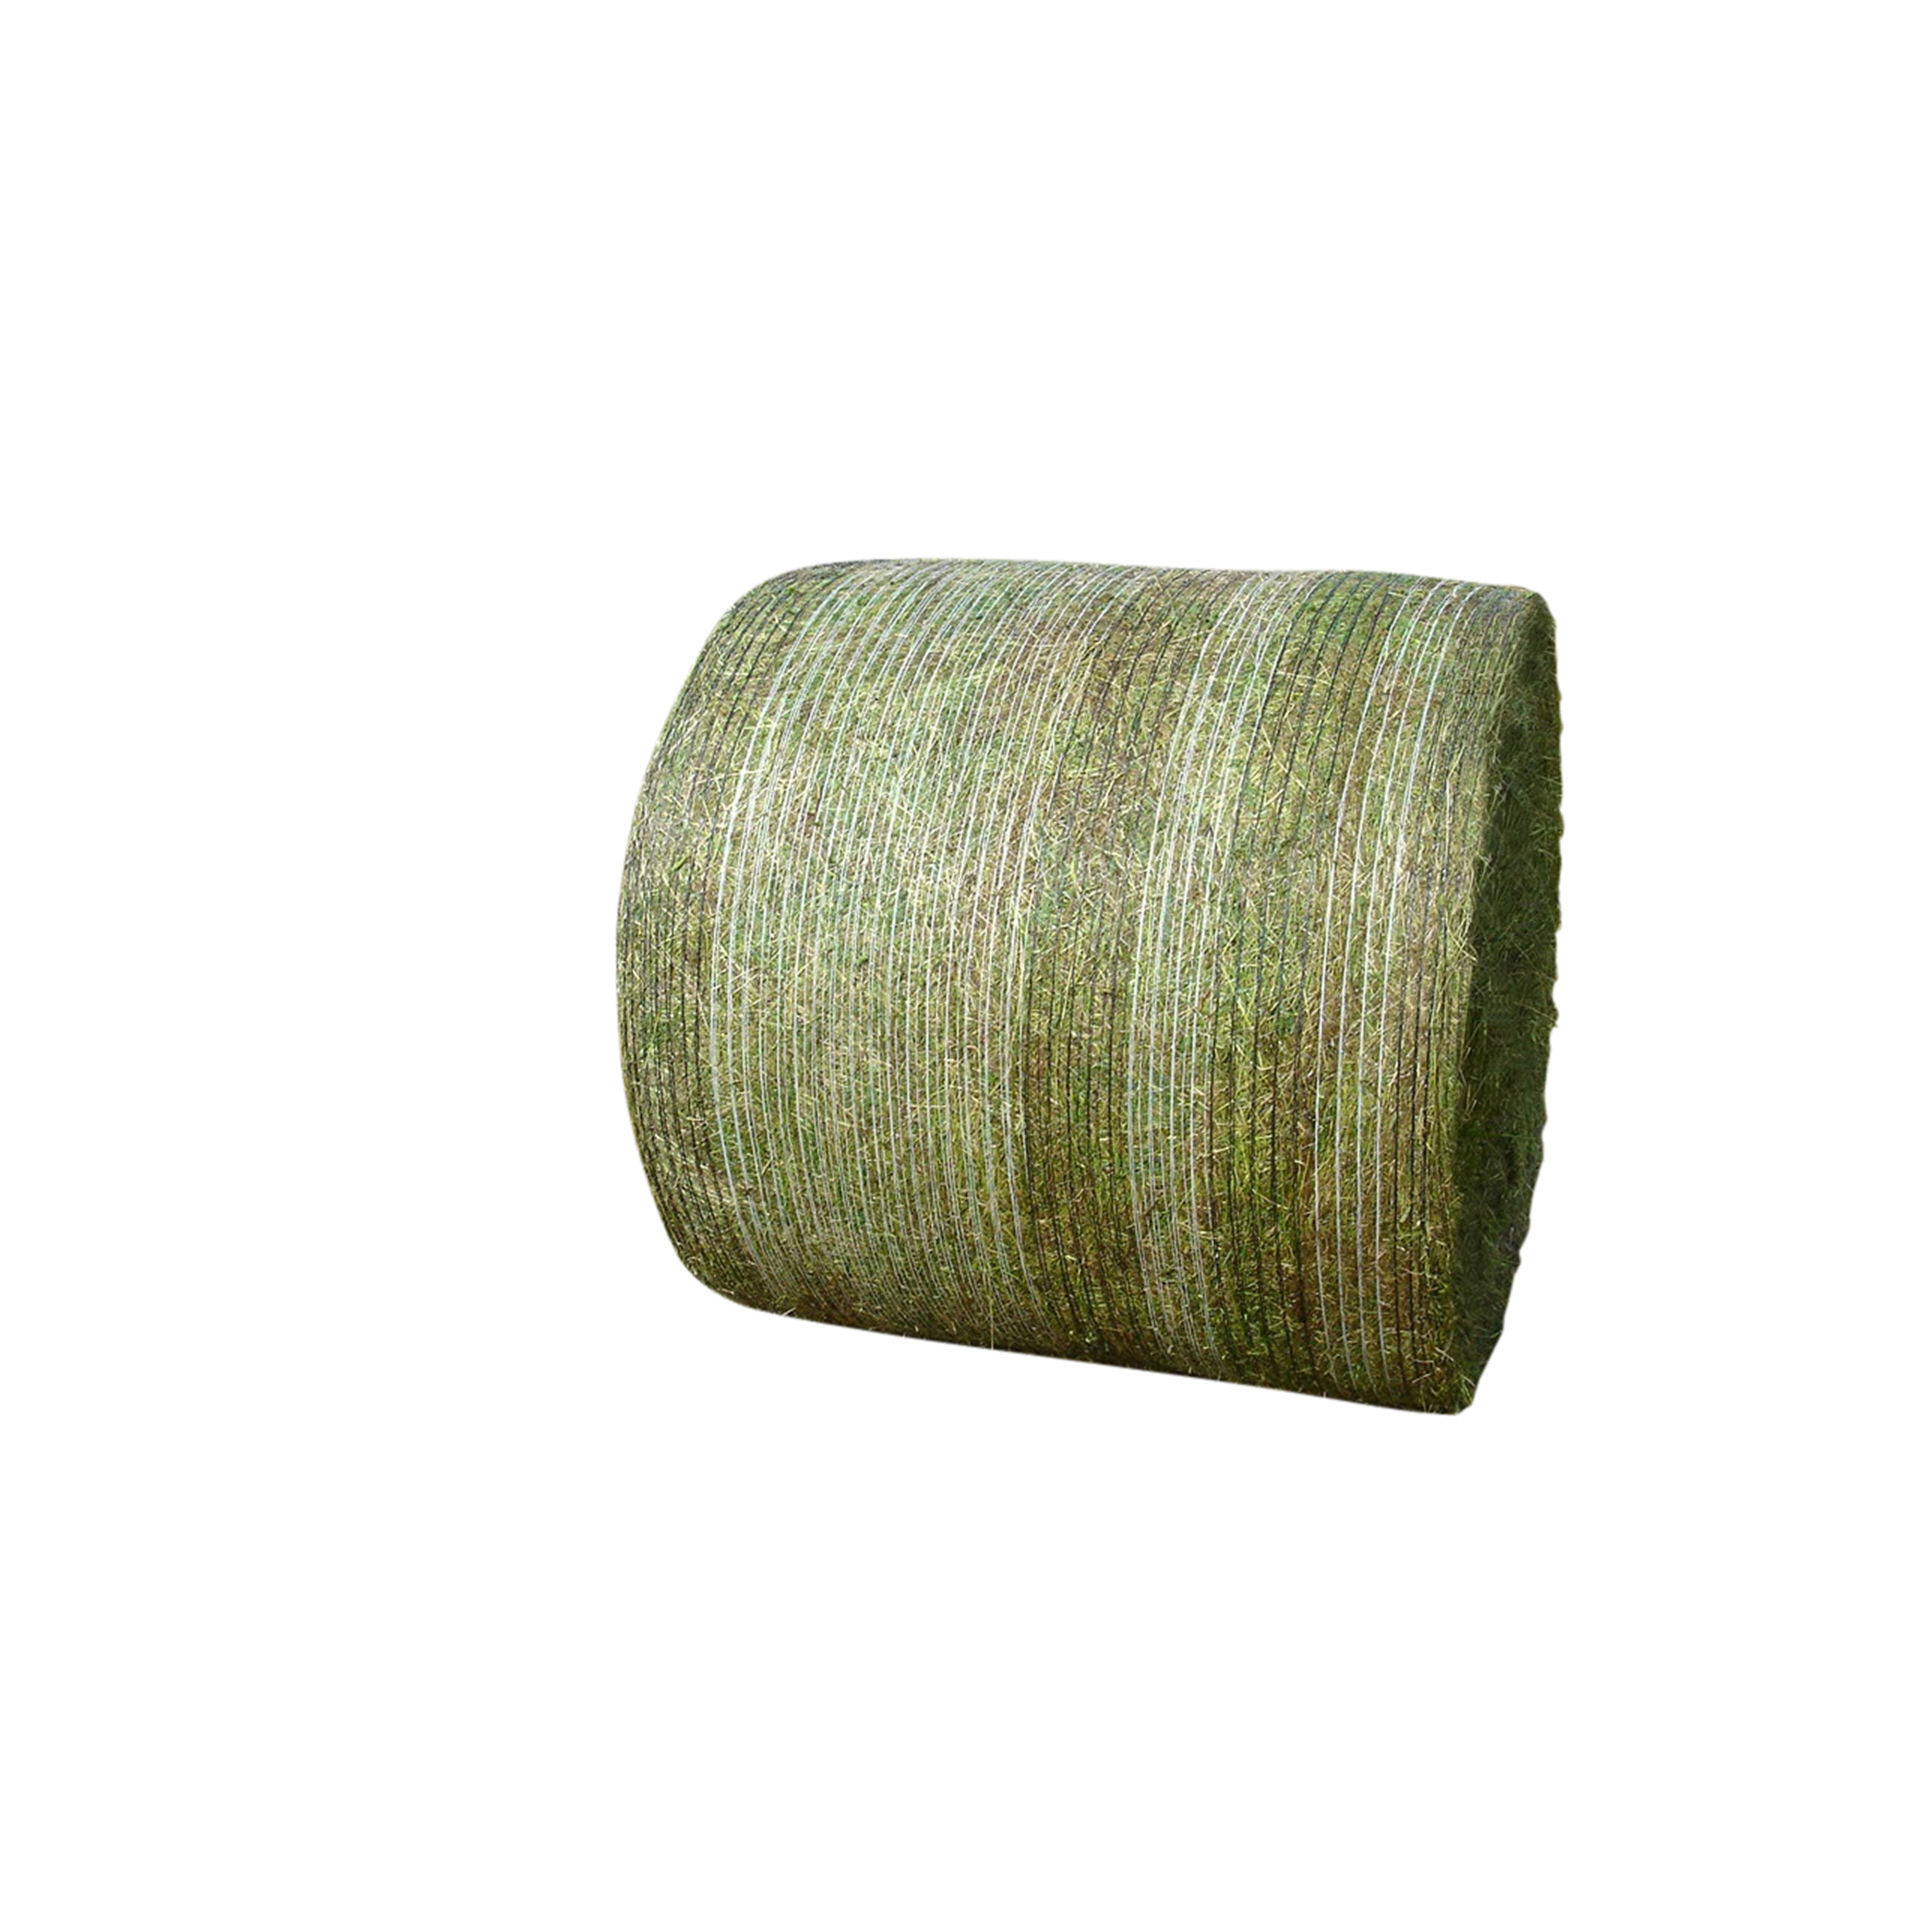 Tama Edge To Edge Bale Net